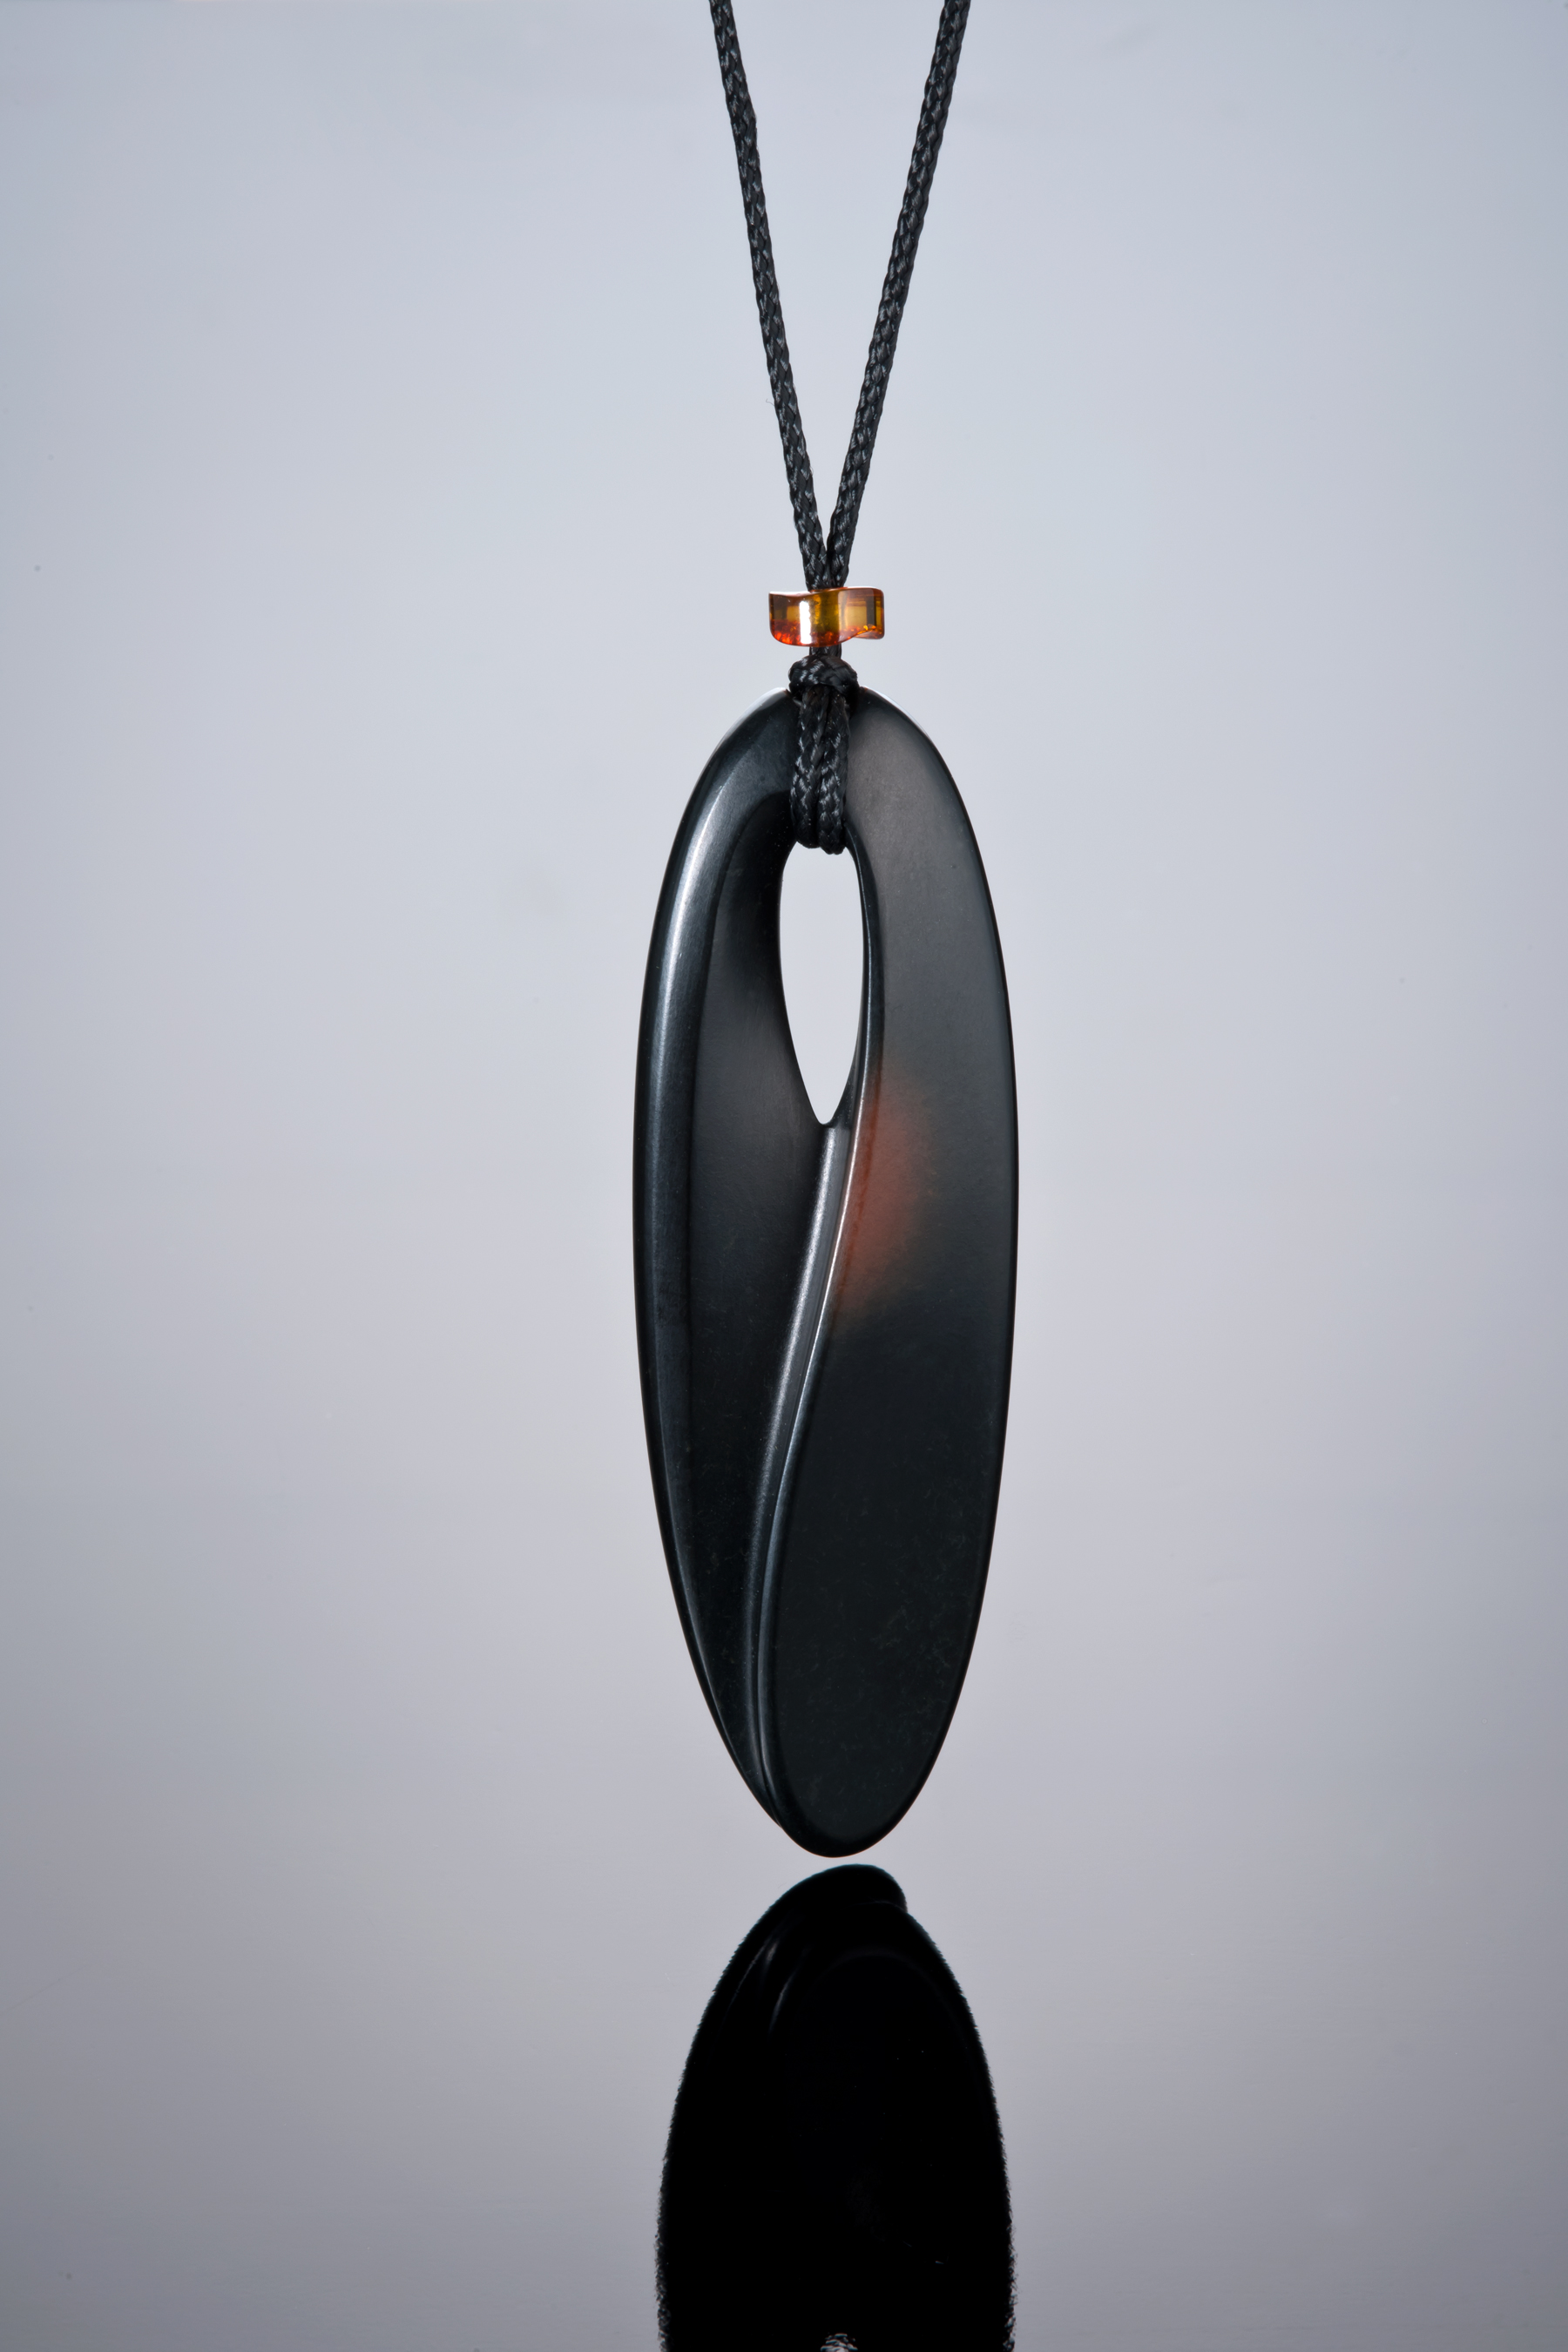 Above is a 3-inch pendant carved by Peter Schilling from Edward's claim Wyoming black jade with some of the rind shown.  (Photo: Robert Weldon)